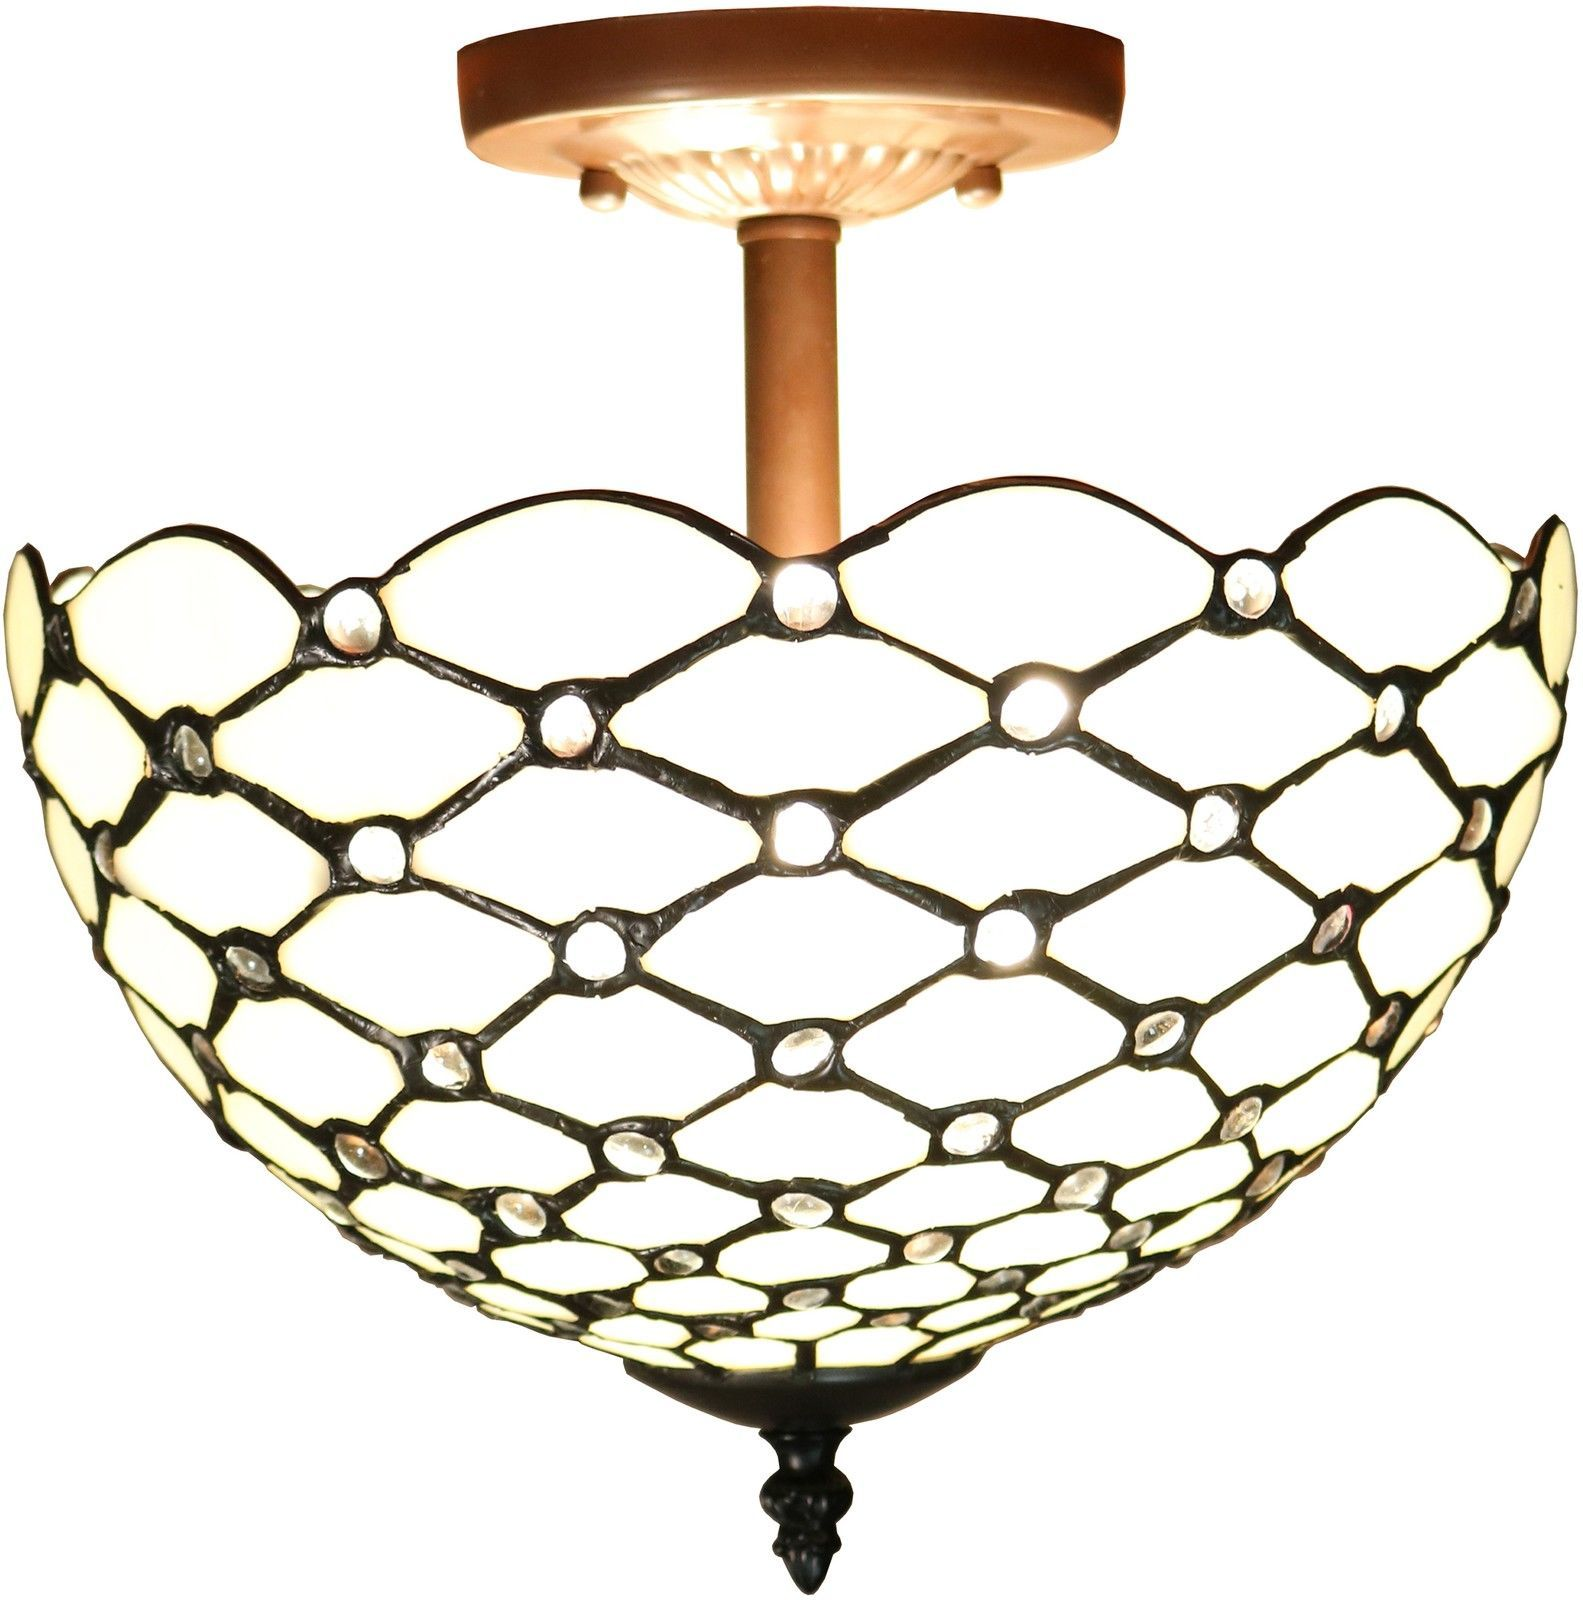 Dining Room Light Fixture Tiffany Style Stained Glass Ceiling Chandelier Mission in Home & Garden, Lamps, Lighting & Ceiling Fans, Chandeliers & Ceiling Fixtures | eBay